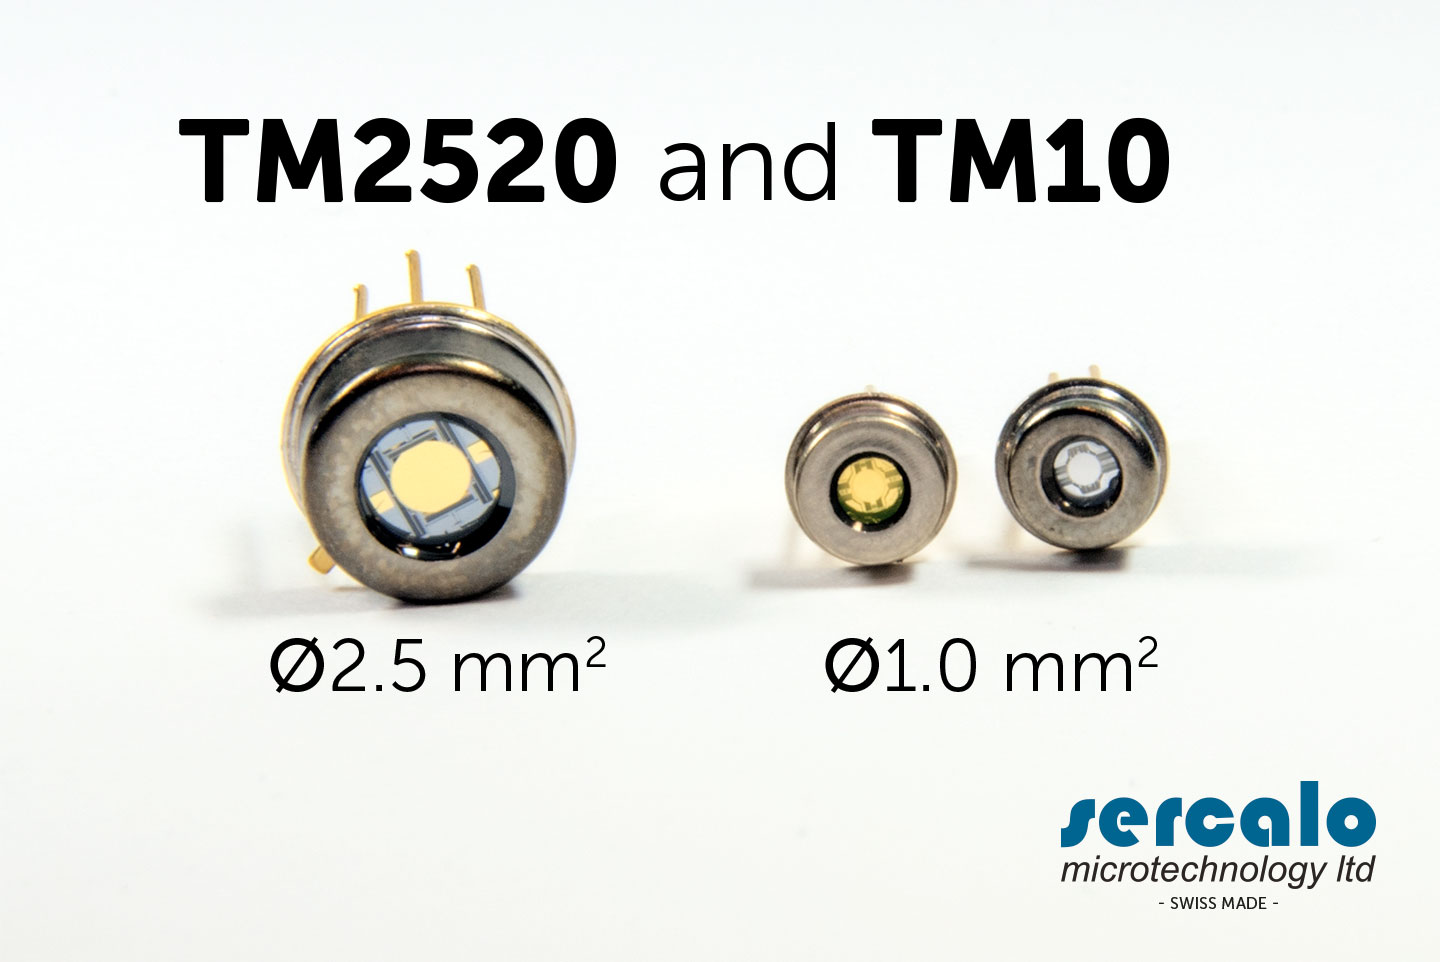 MEMS Electro Micro-mirrors TM10 and TM2520